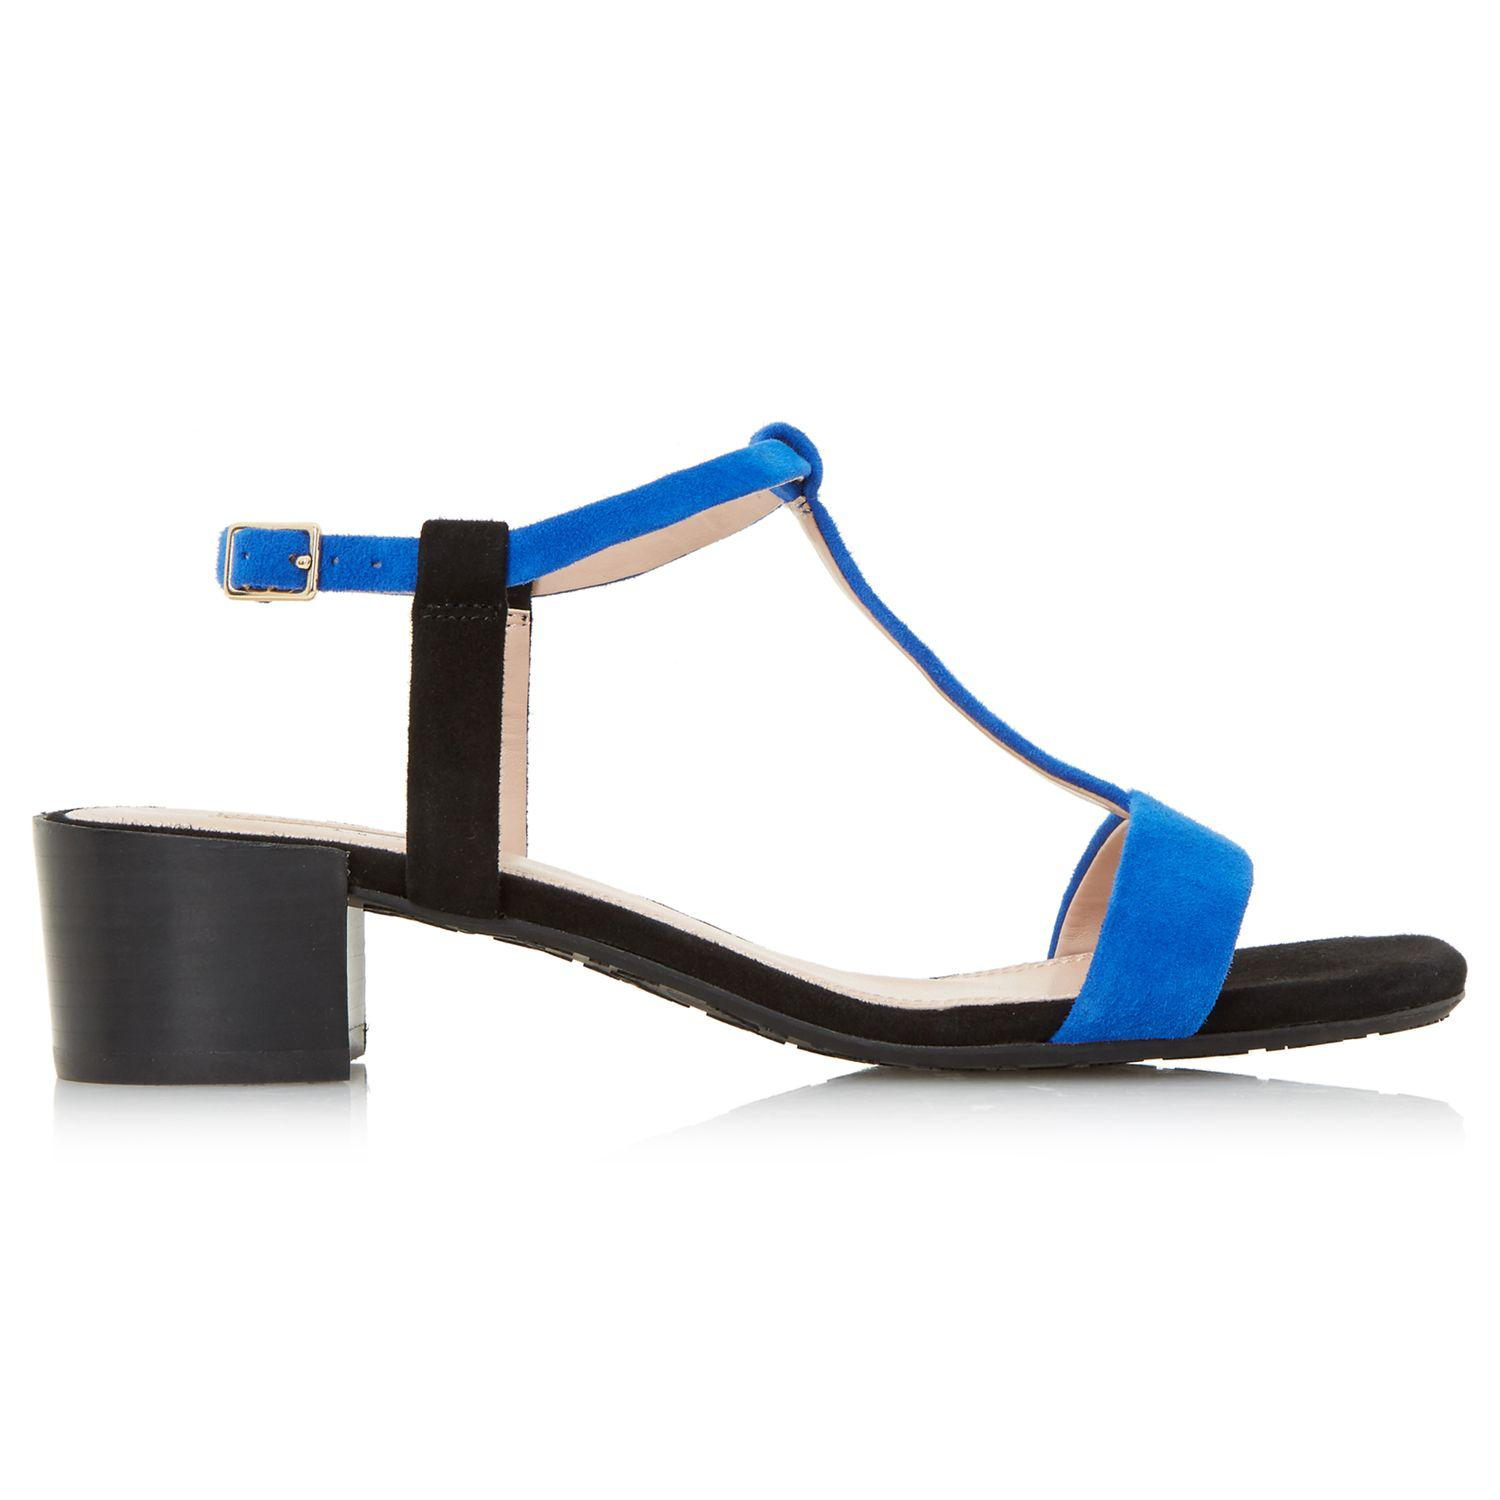 Dune Issie T-bar Block Heeled Sandals in Blue - Lyst